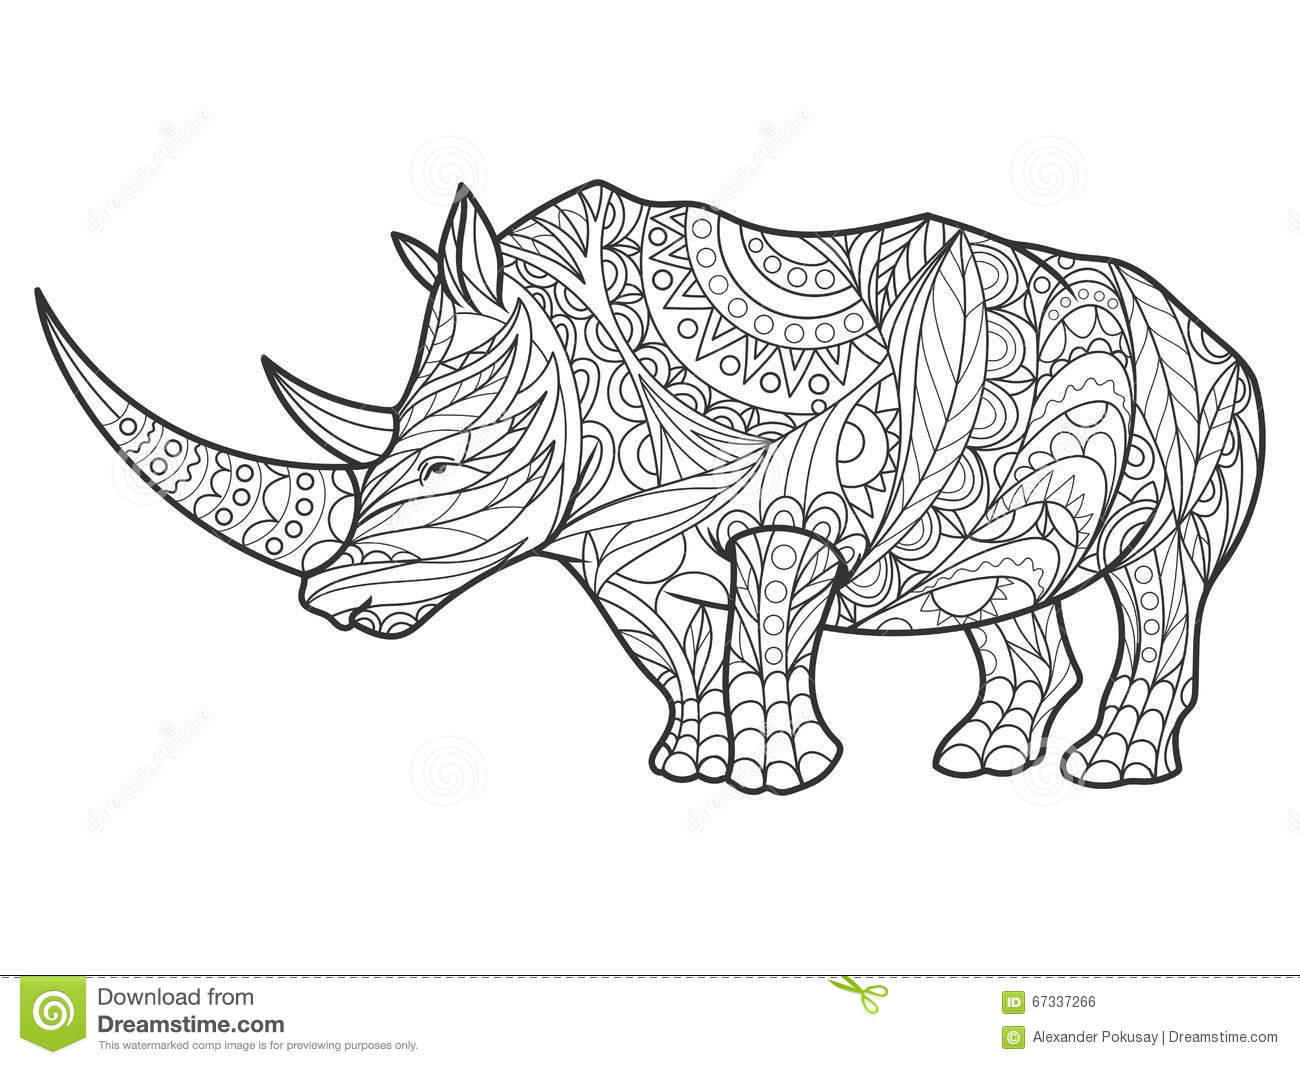 rhinoceros coloring page - rhinoceros coloring book for adults vector stock vector